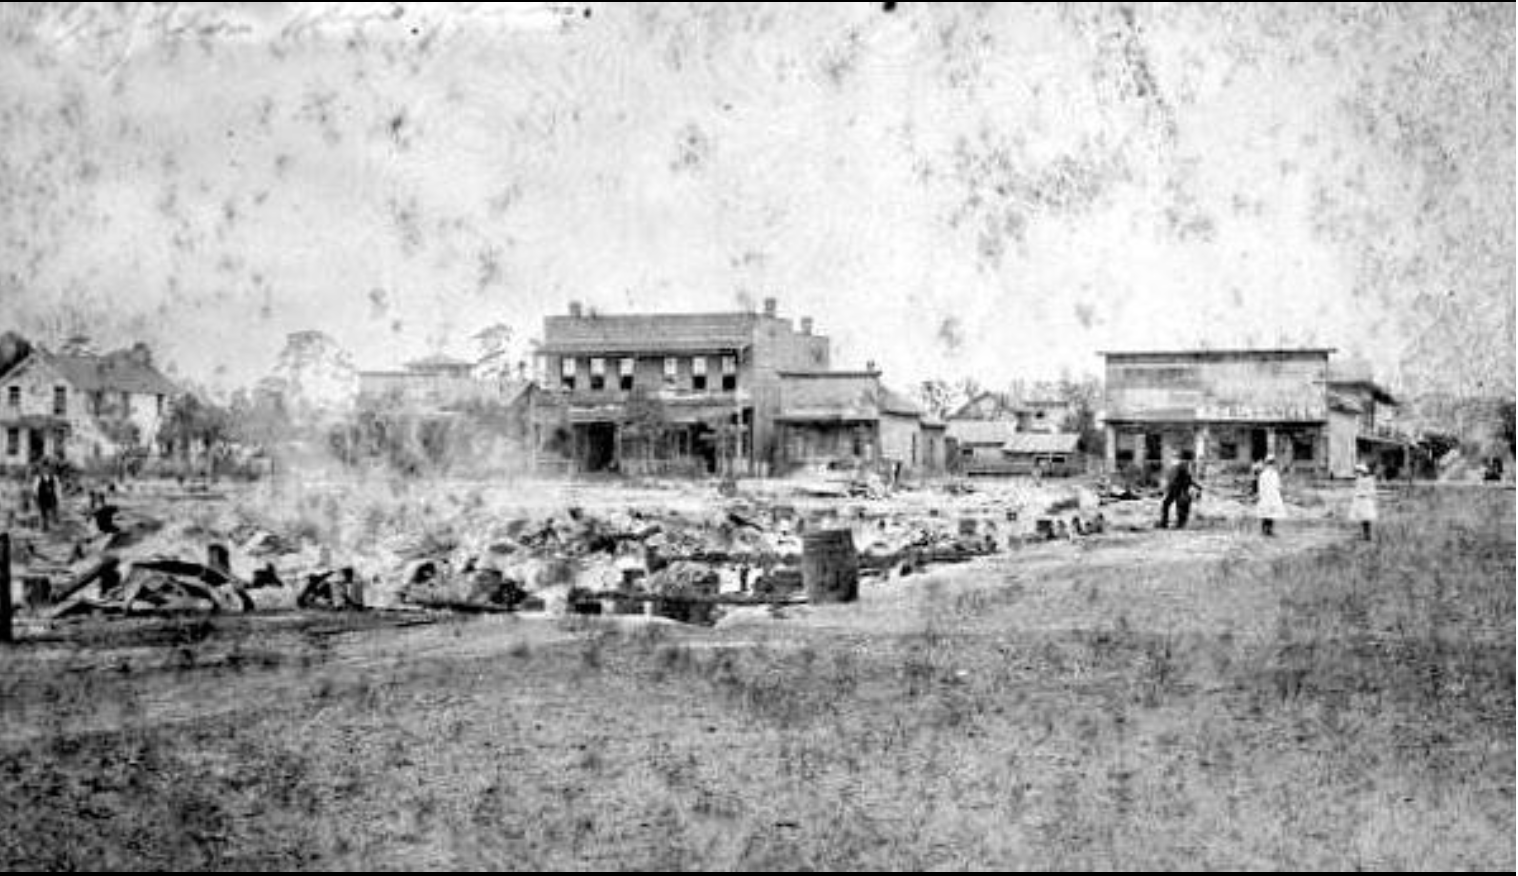 The ruins of downtown DeLand after the fire.